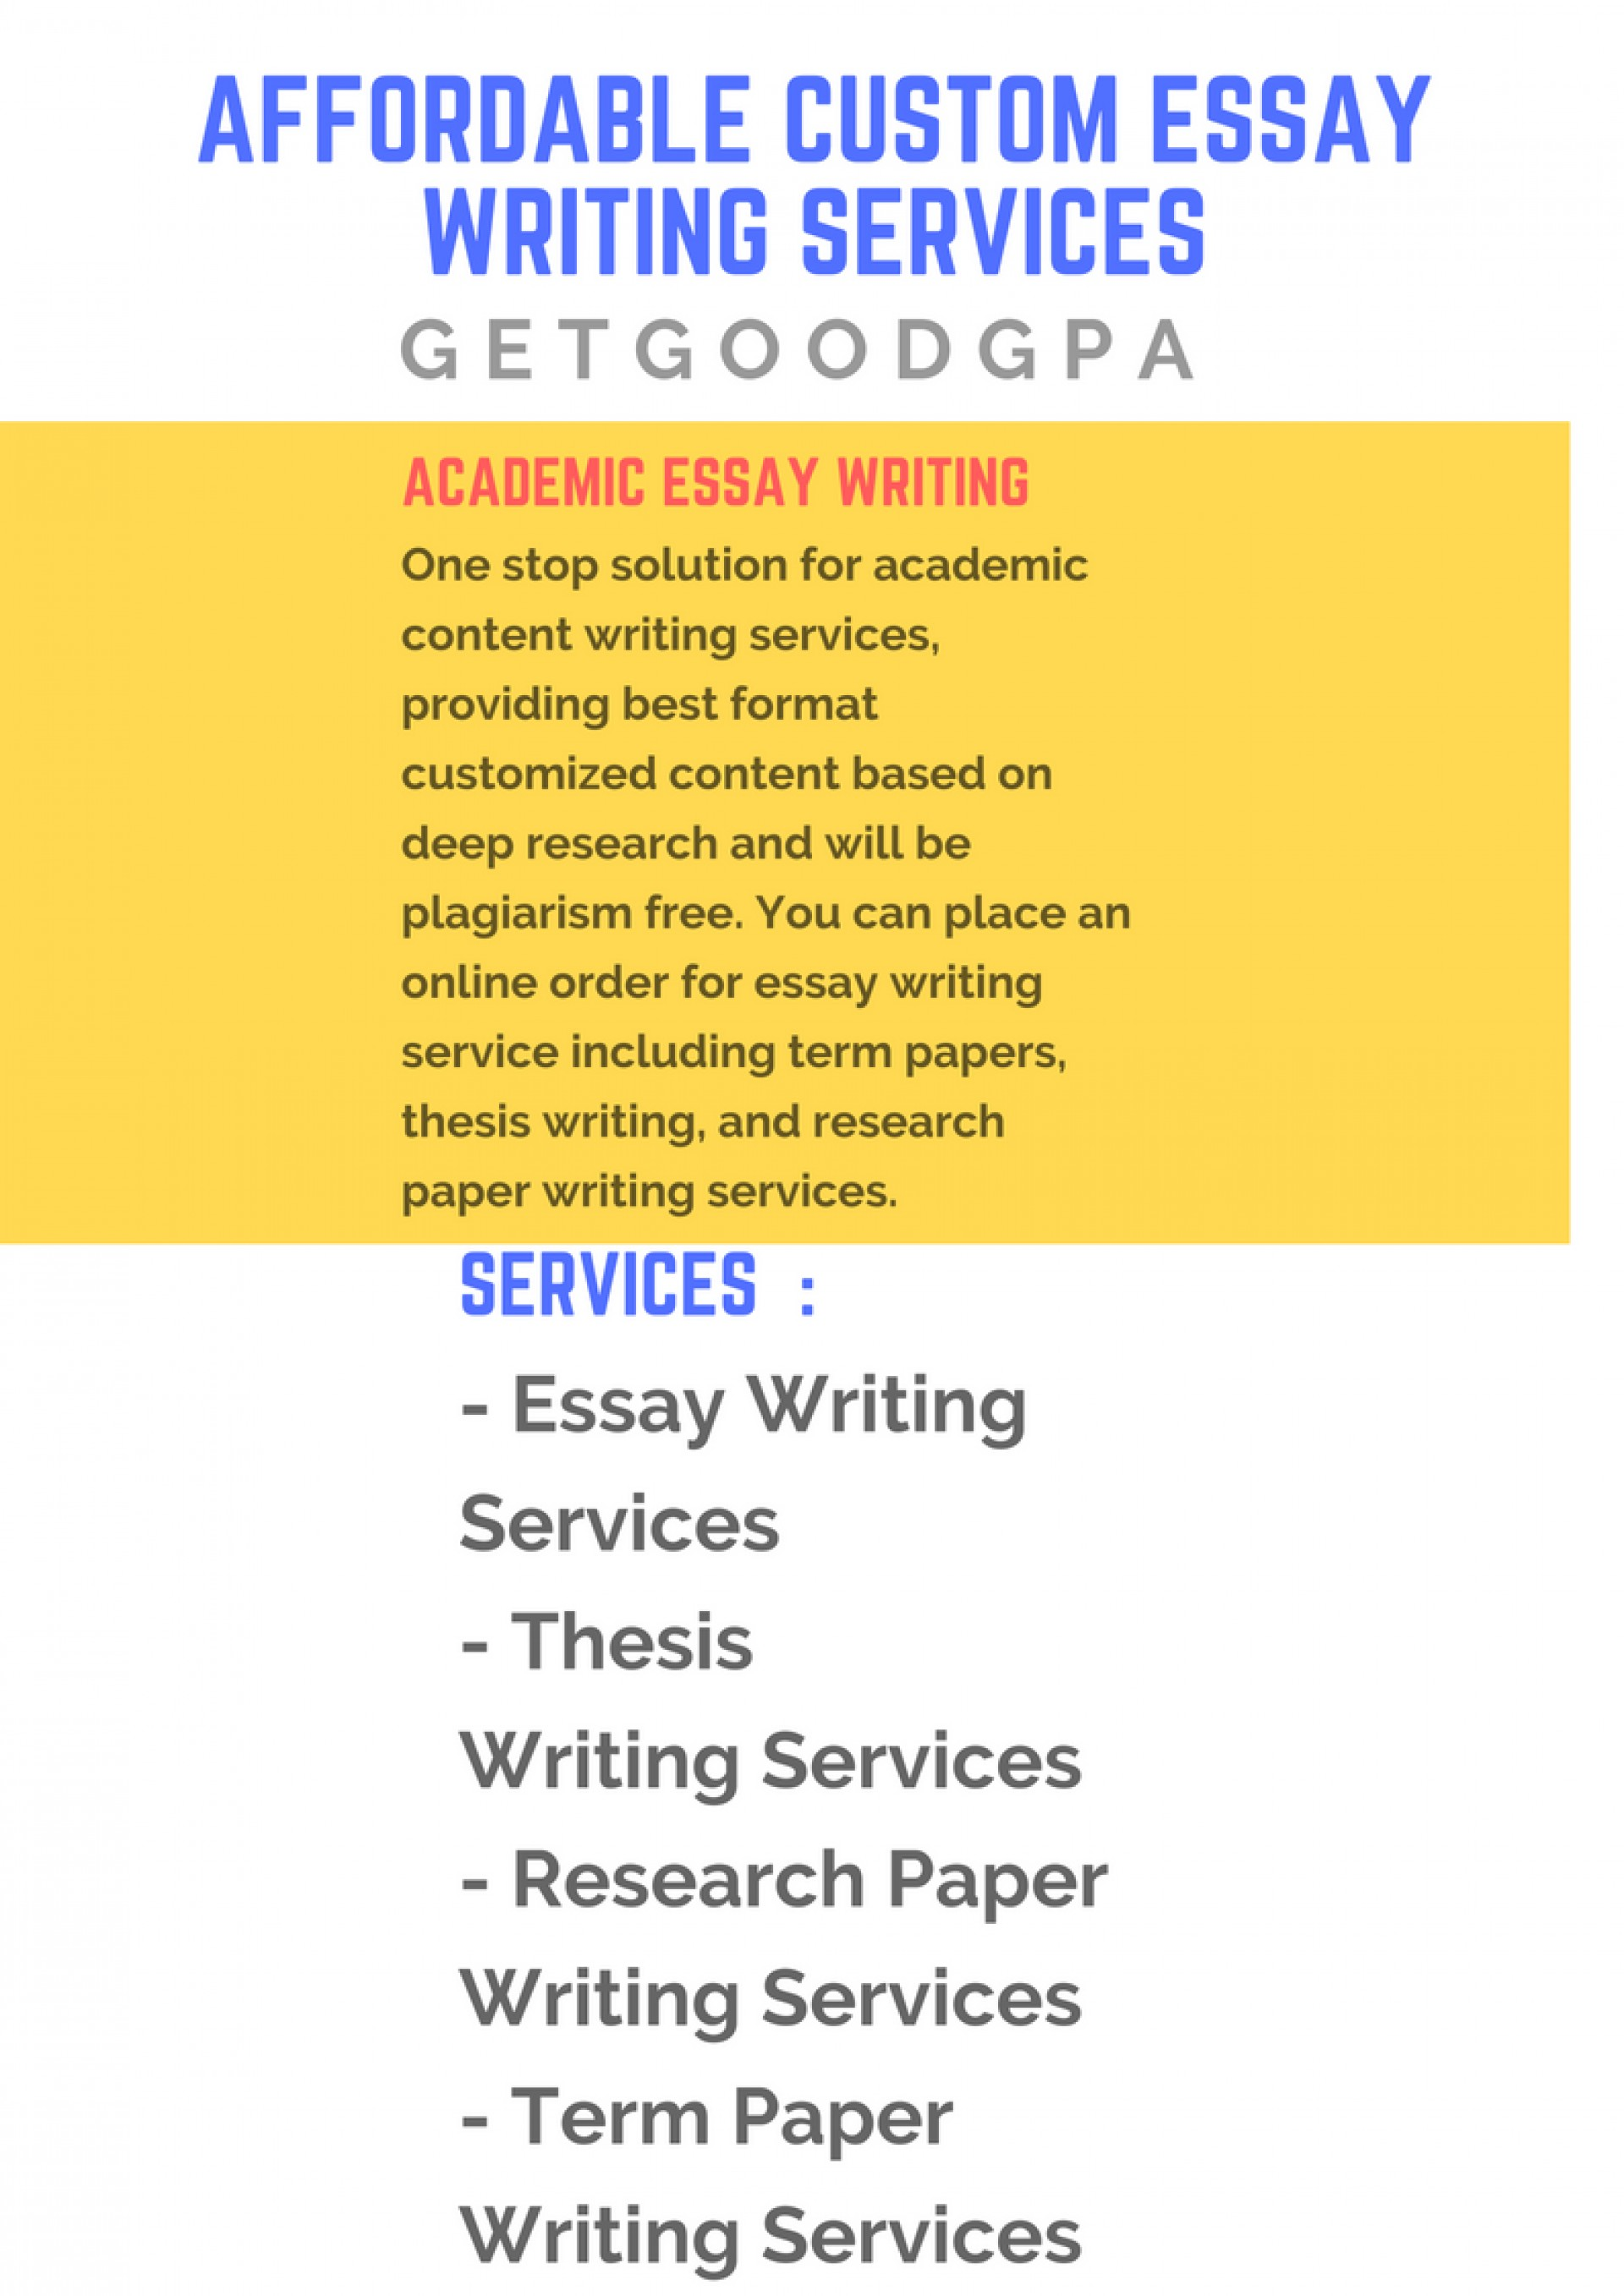 003 1p24u5izogrgxlkfzqmxvgq Best Online Research Paper Shocking Writers Academic Writing Service 1920